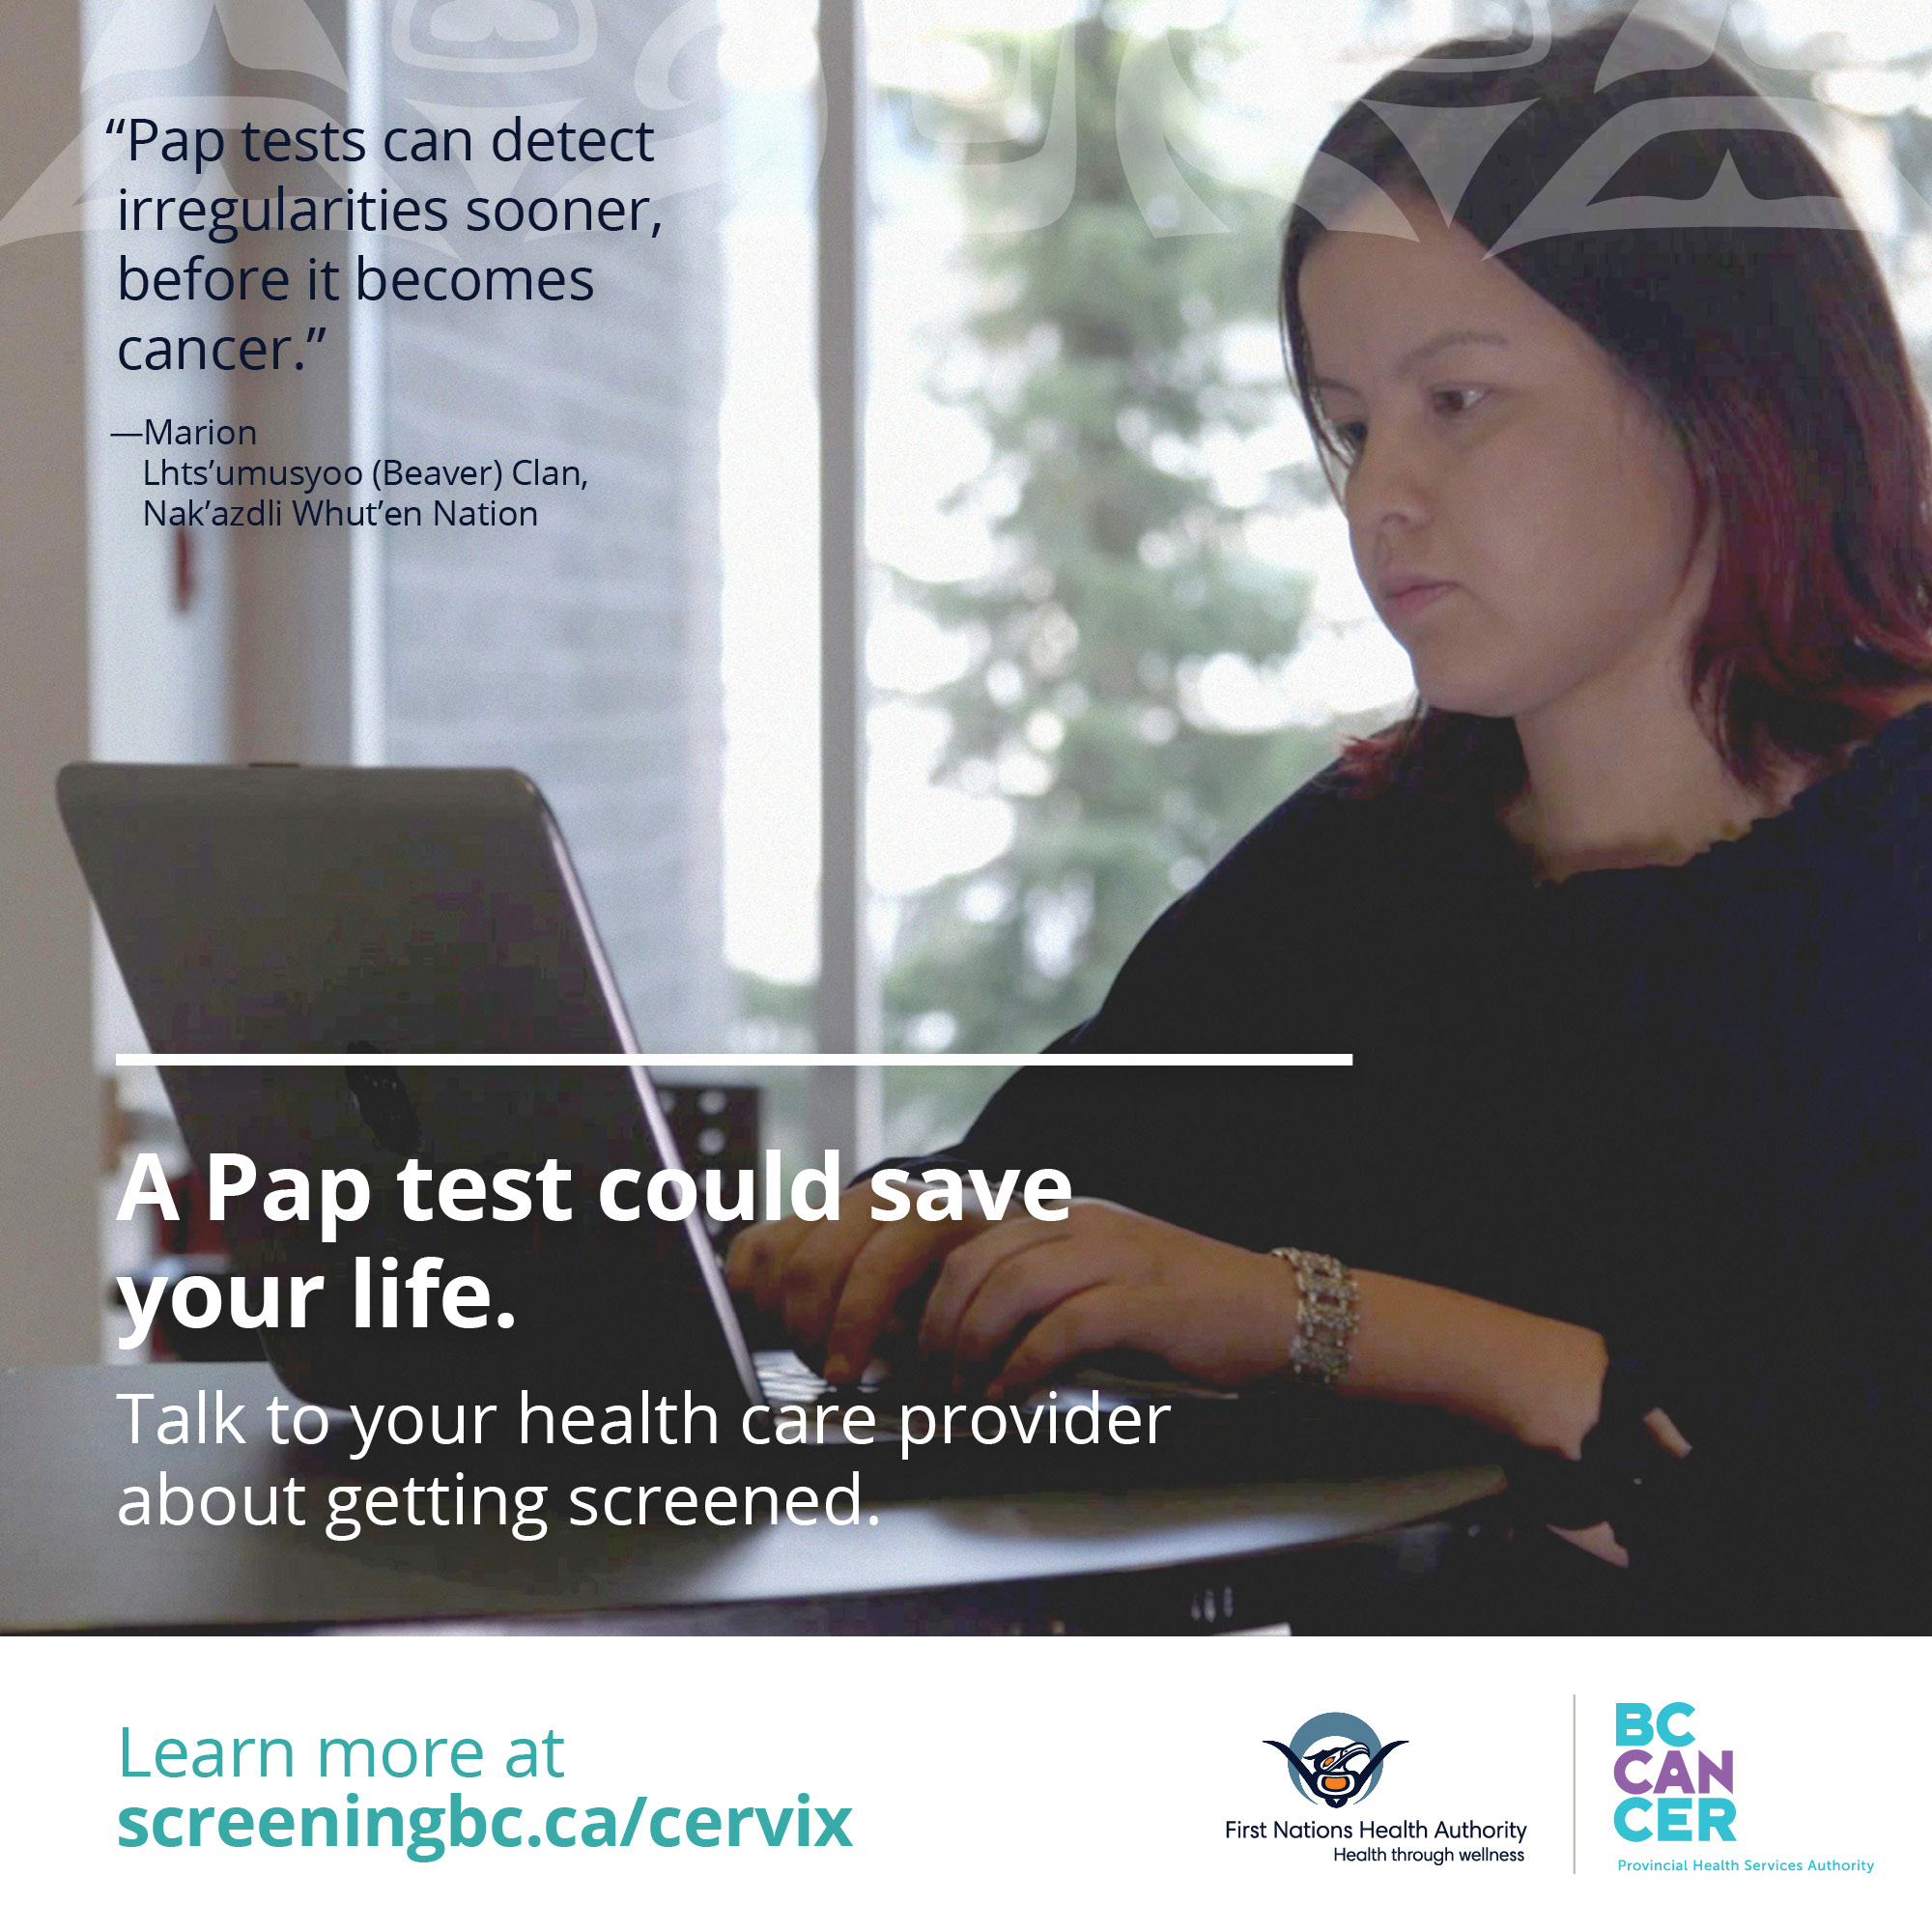 FNHA-BC-Cancer-Cervical-Cancer-Screening-Postcard-2.JPG